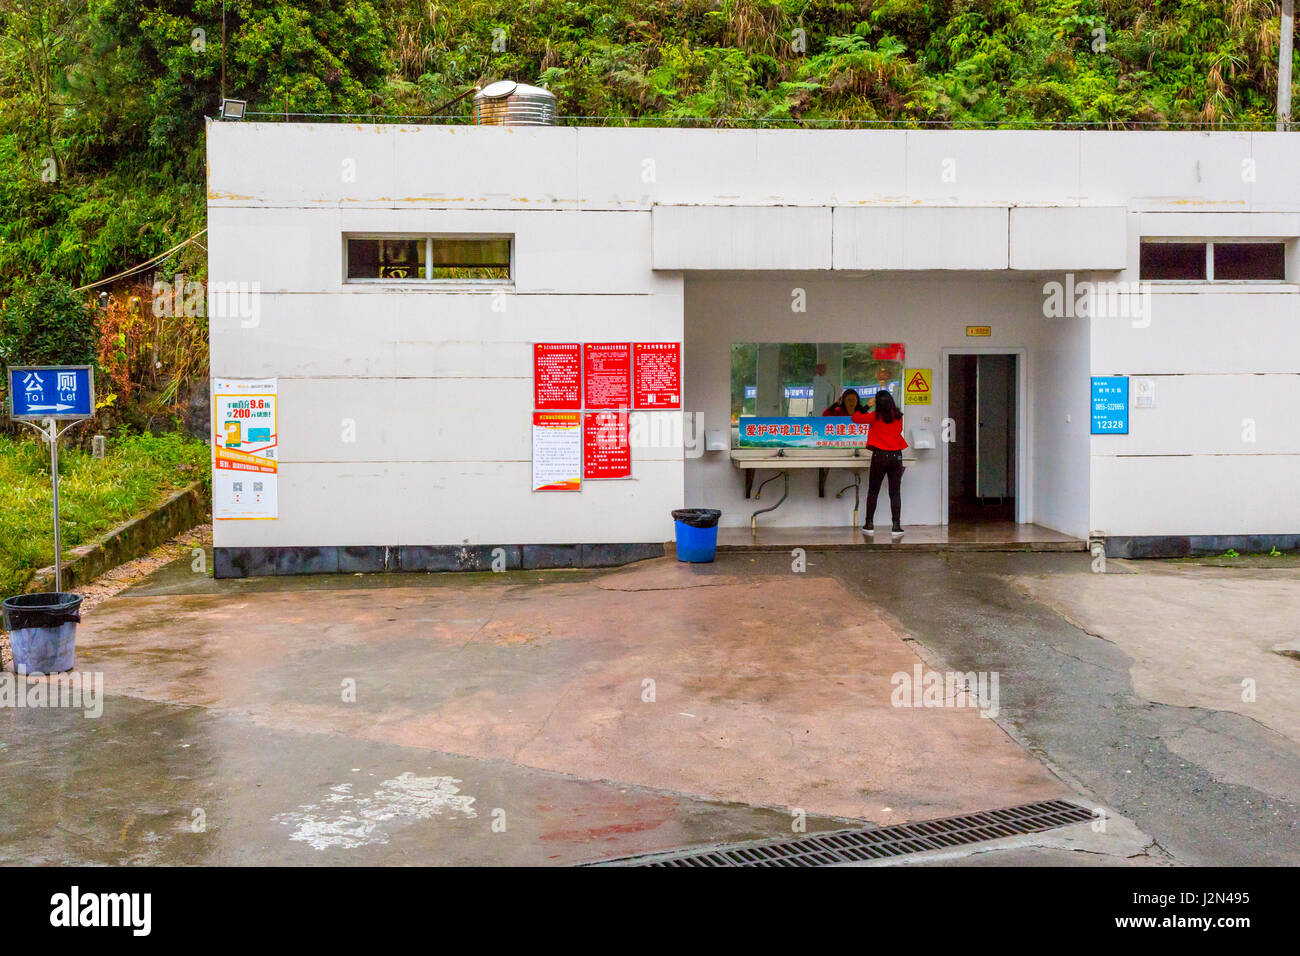 Guizhou, China, between Kaili and Zhenyuan.  Toilets and Wash Basin at Roadside Rest Stop Service Station. - Stock Image